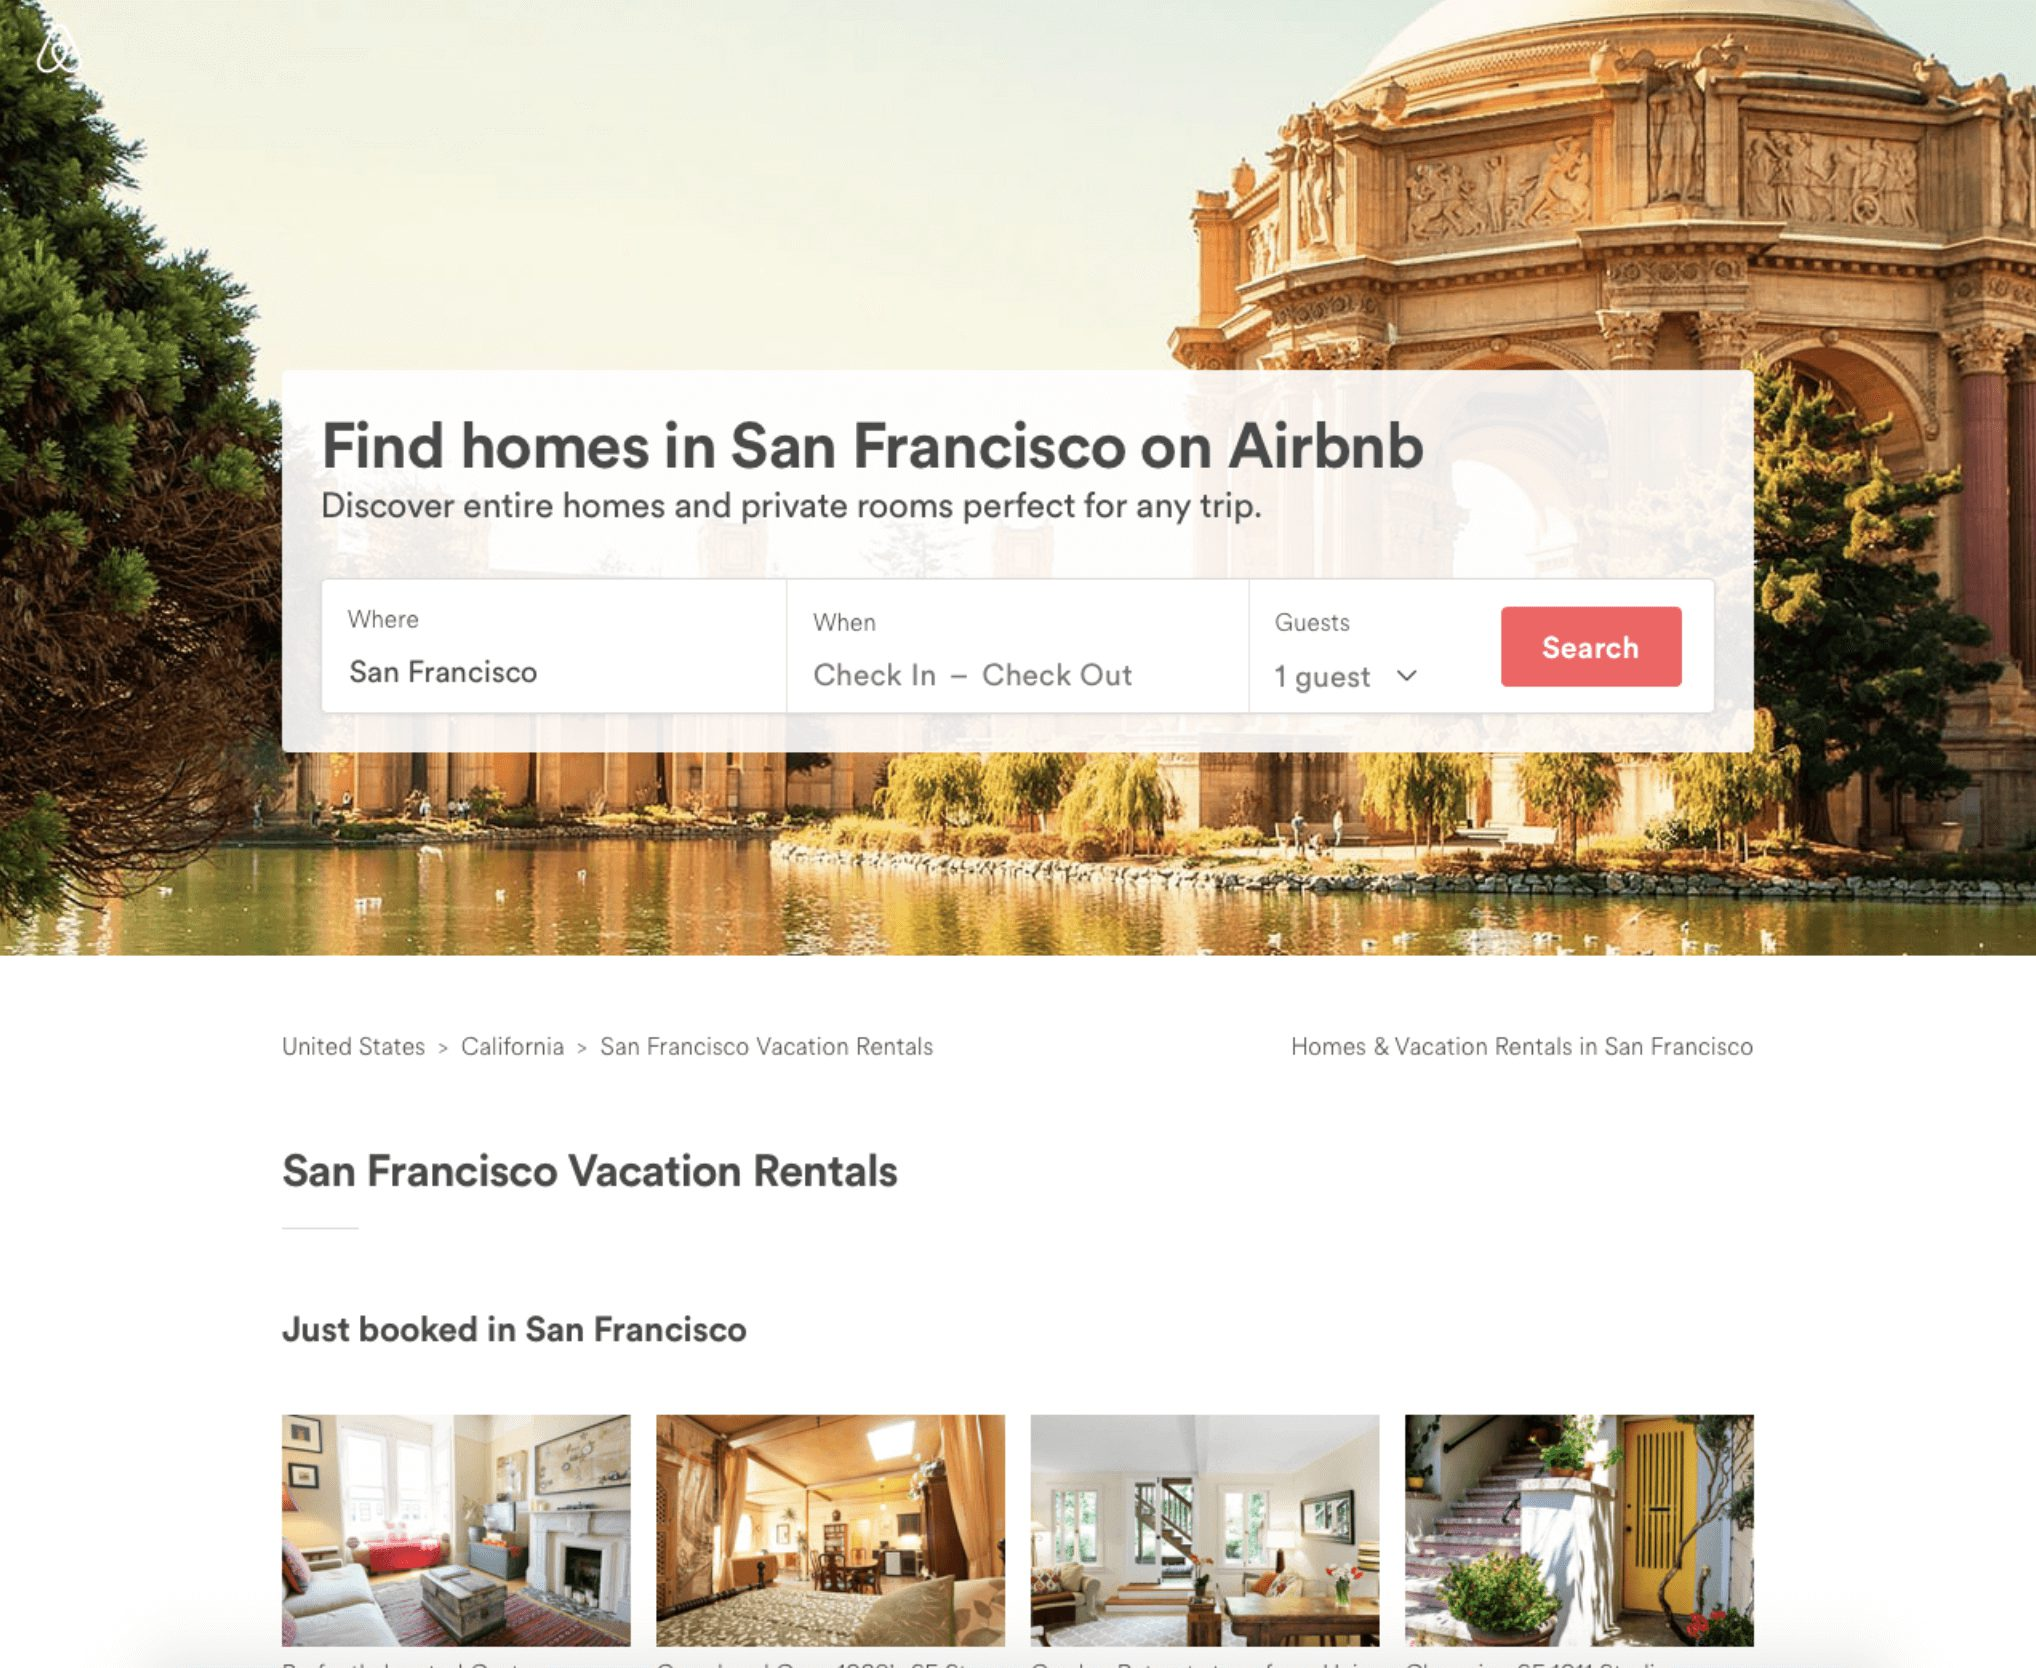 Airbnb search engine